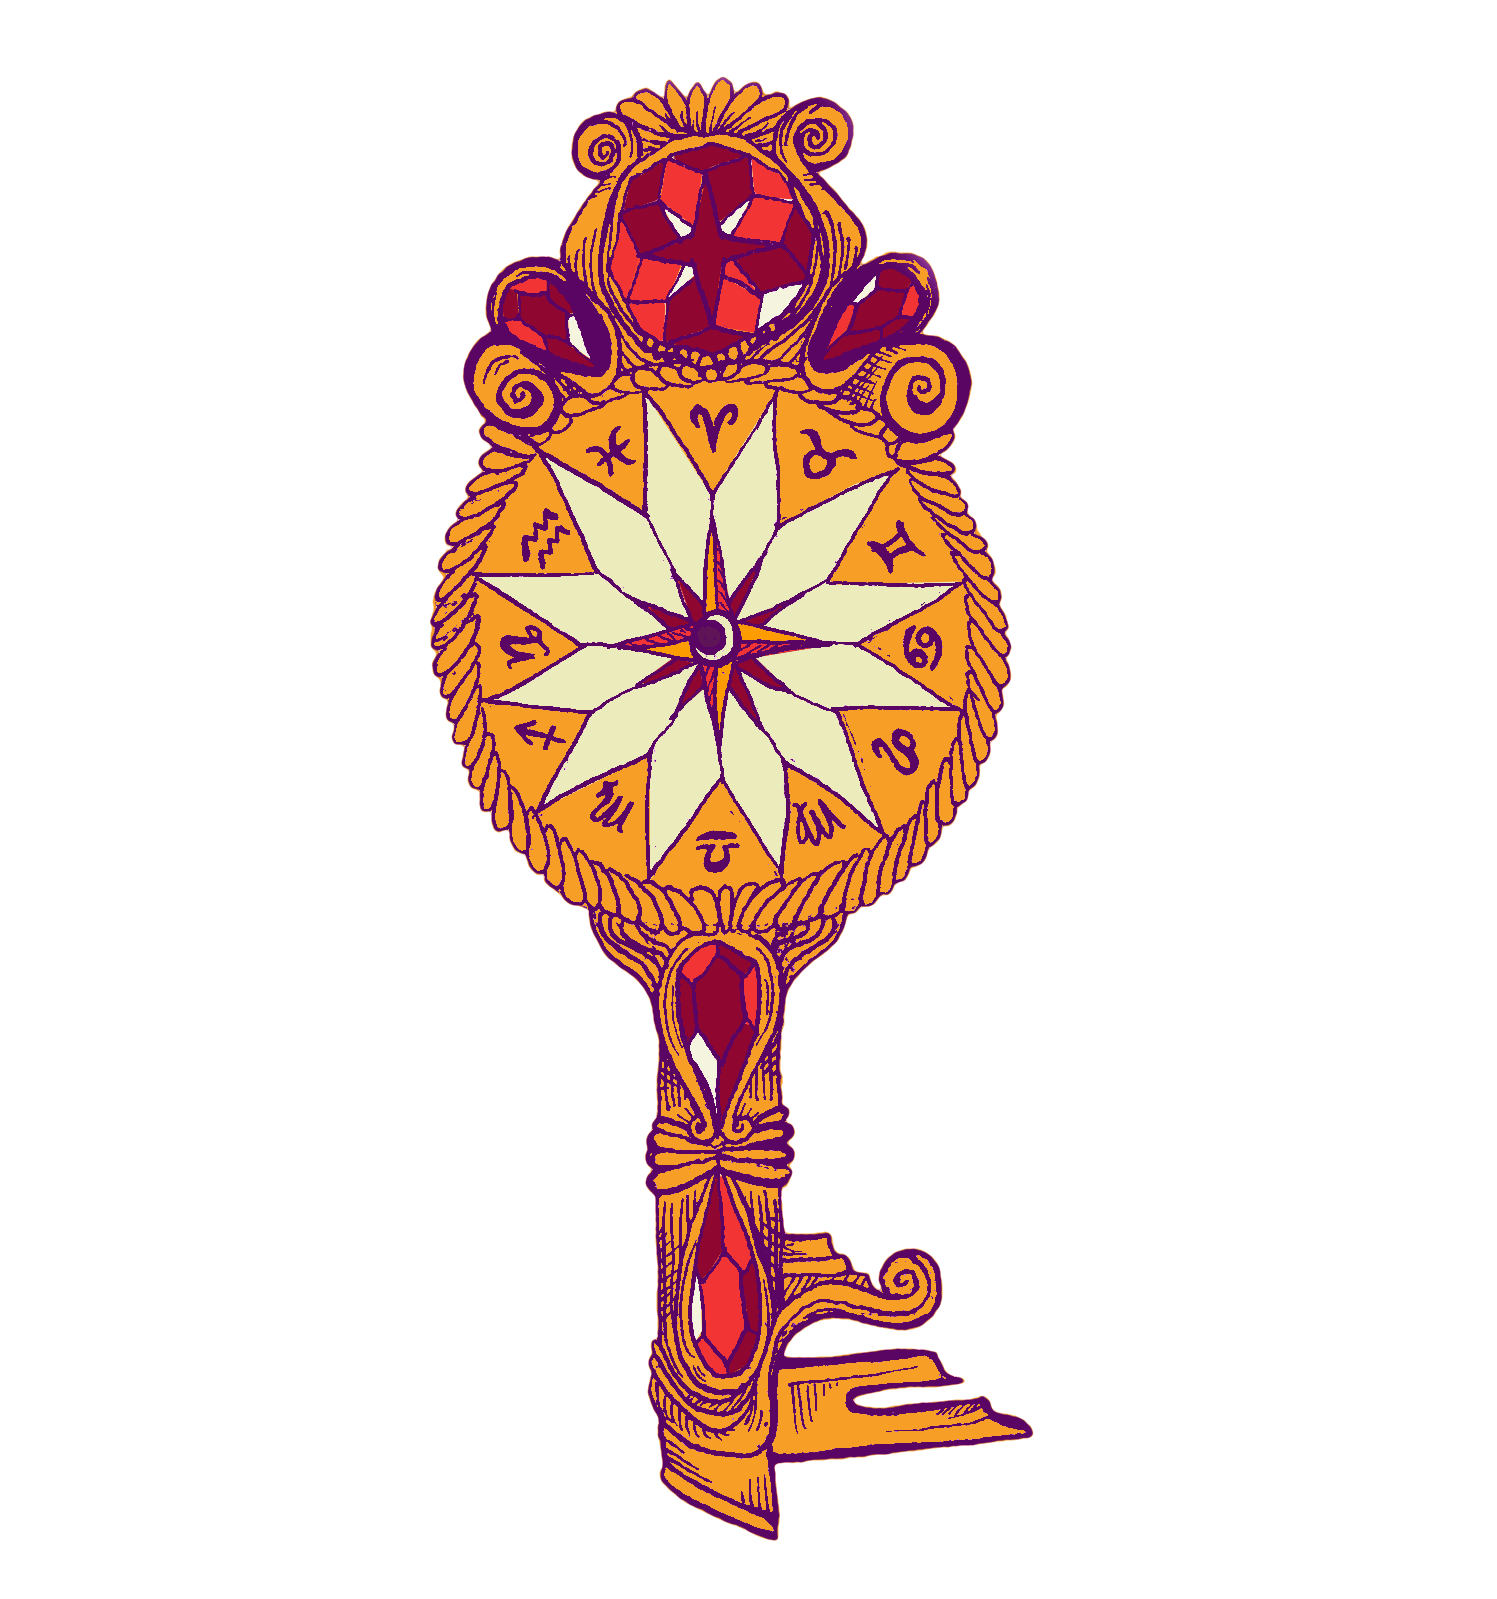 jewel-decked astrology key